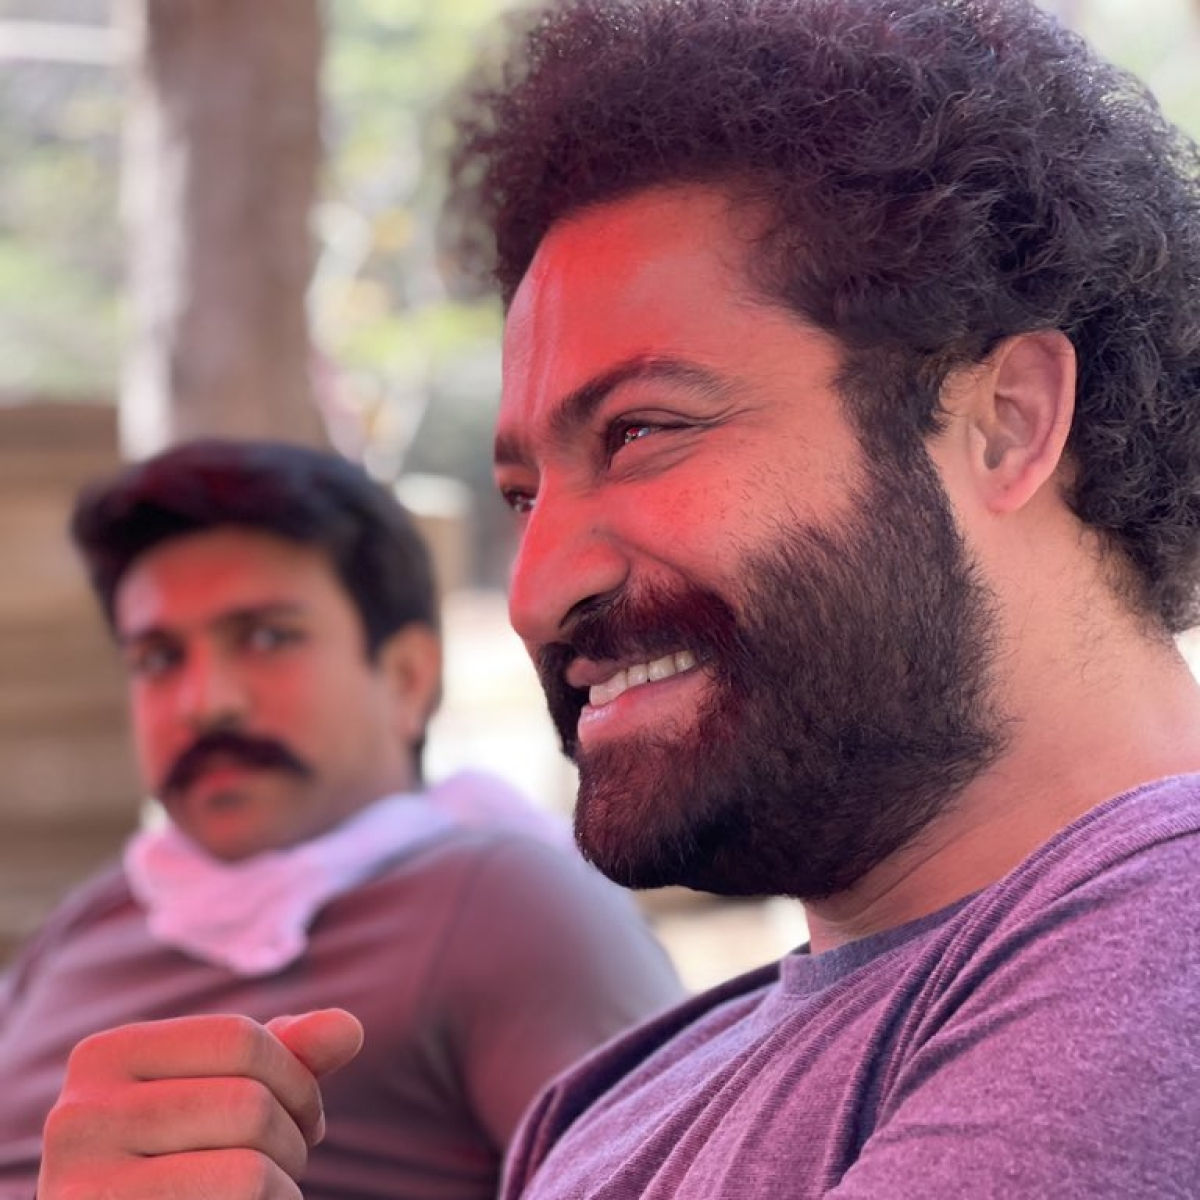 SS Rajamouli's 'RRR' getting offers of over Rs 348 cr for theatrical rights